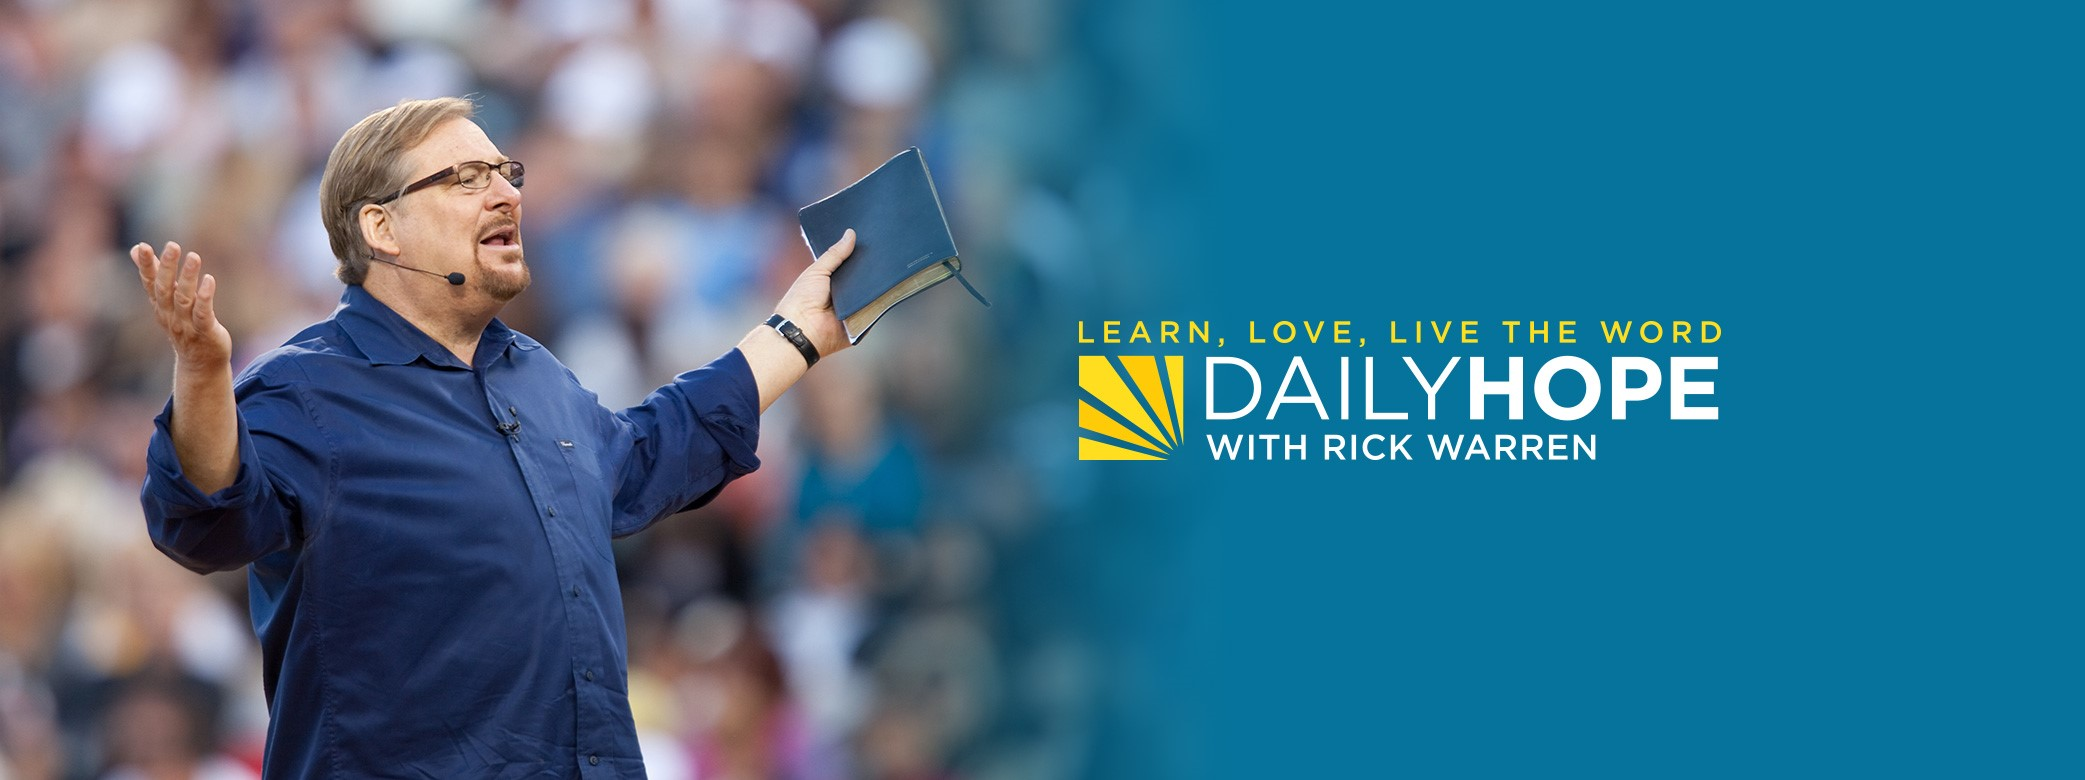 Rick Warren Daily Hope Devotional 26th October 2020, Rick Warren Daily Hope Devotional 26th October 2020 – Sin Is the Opposite of God, Premium News24